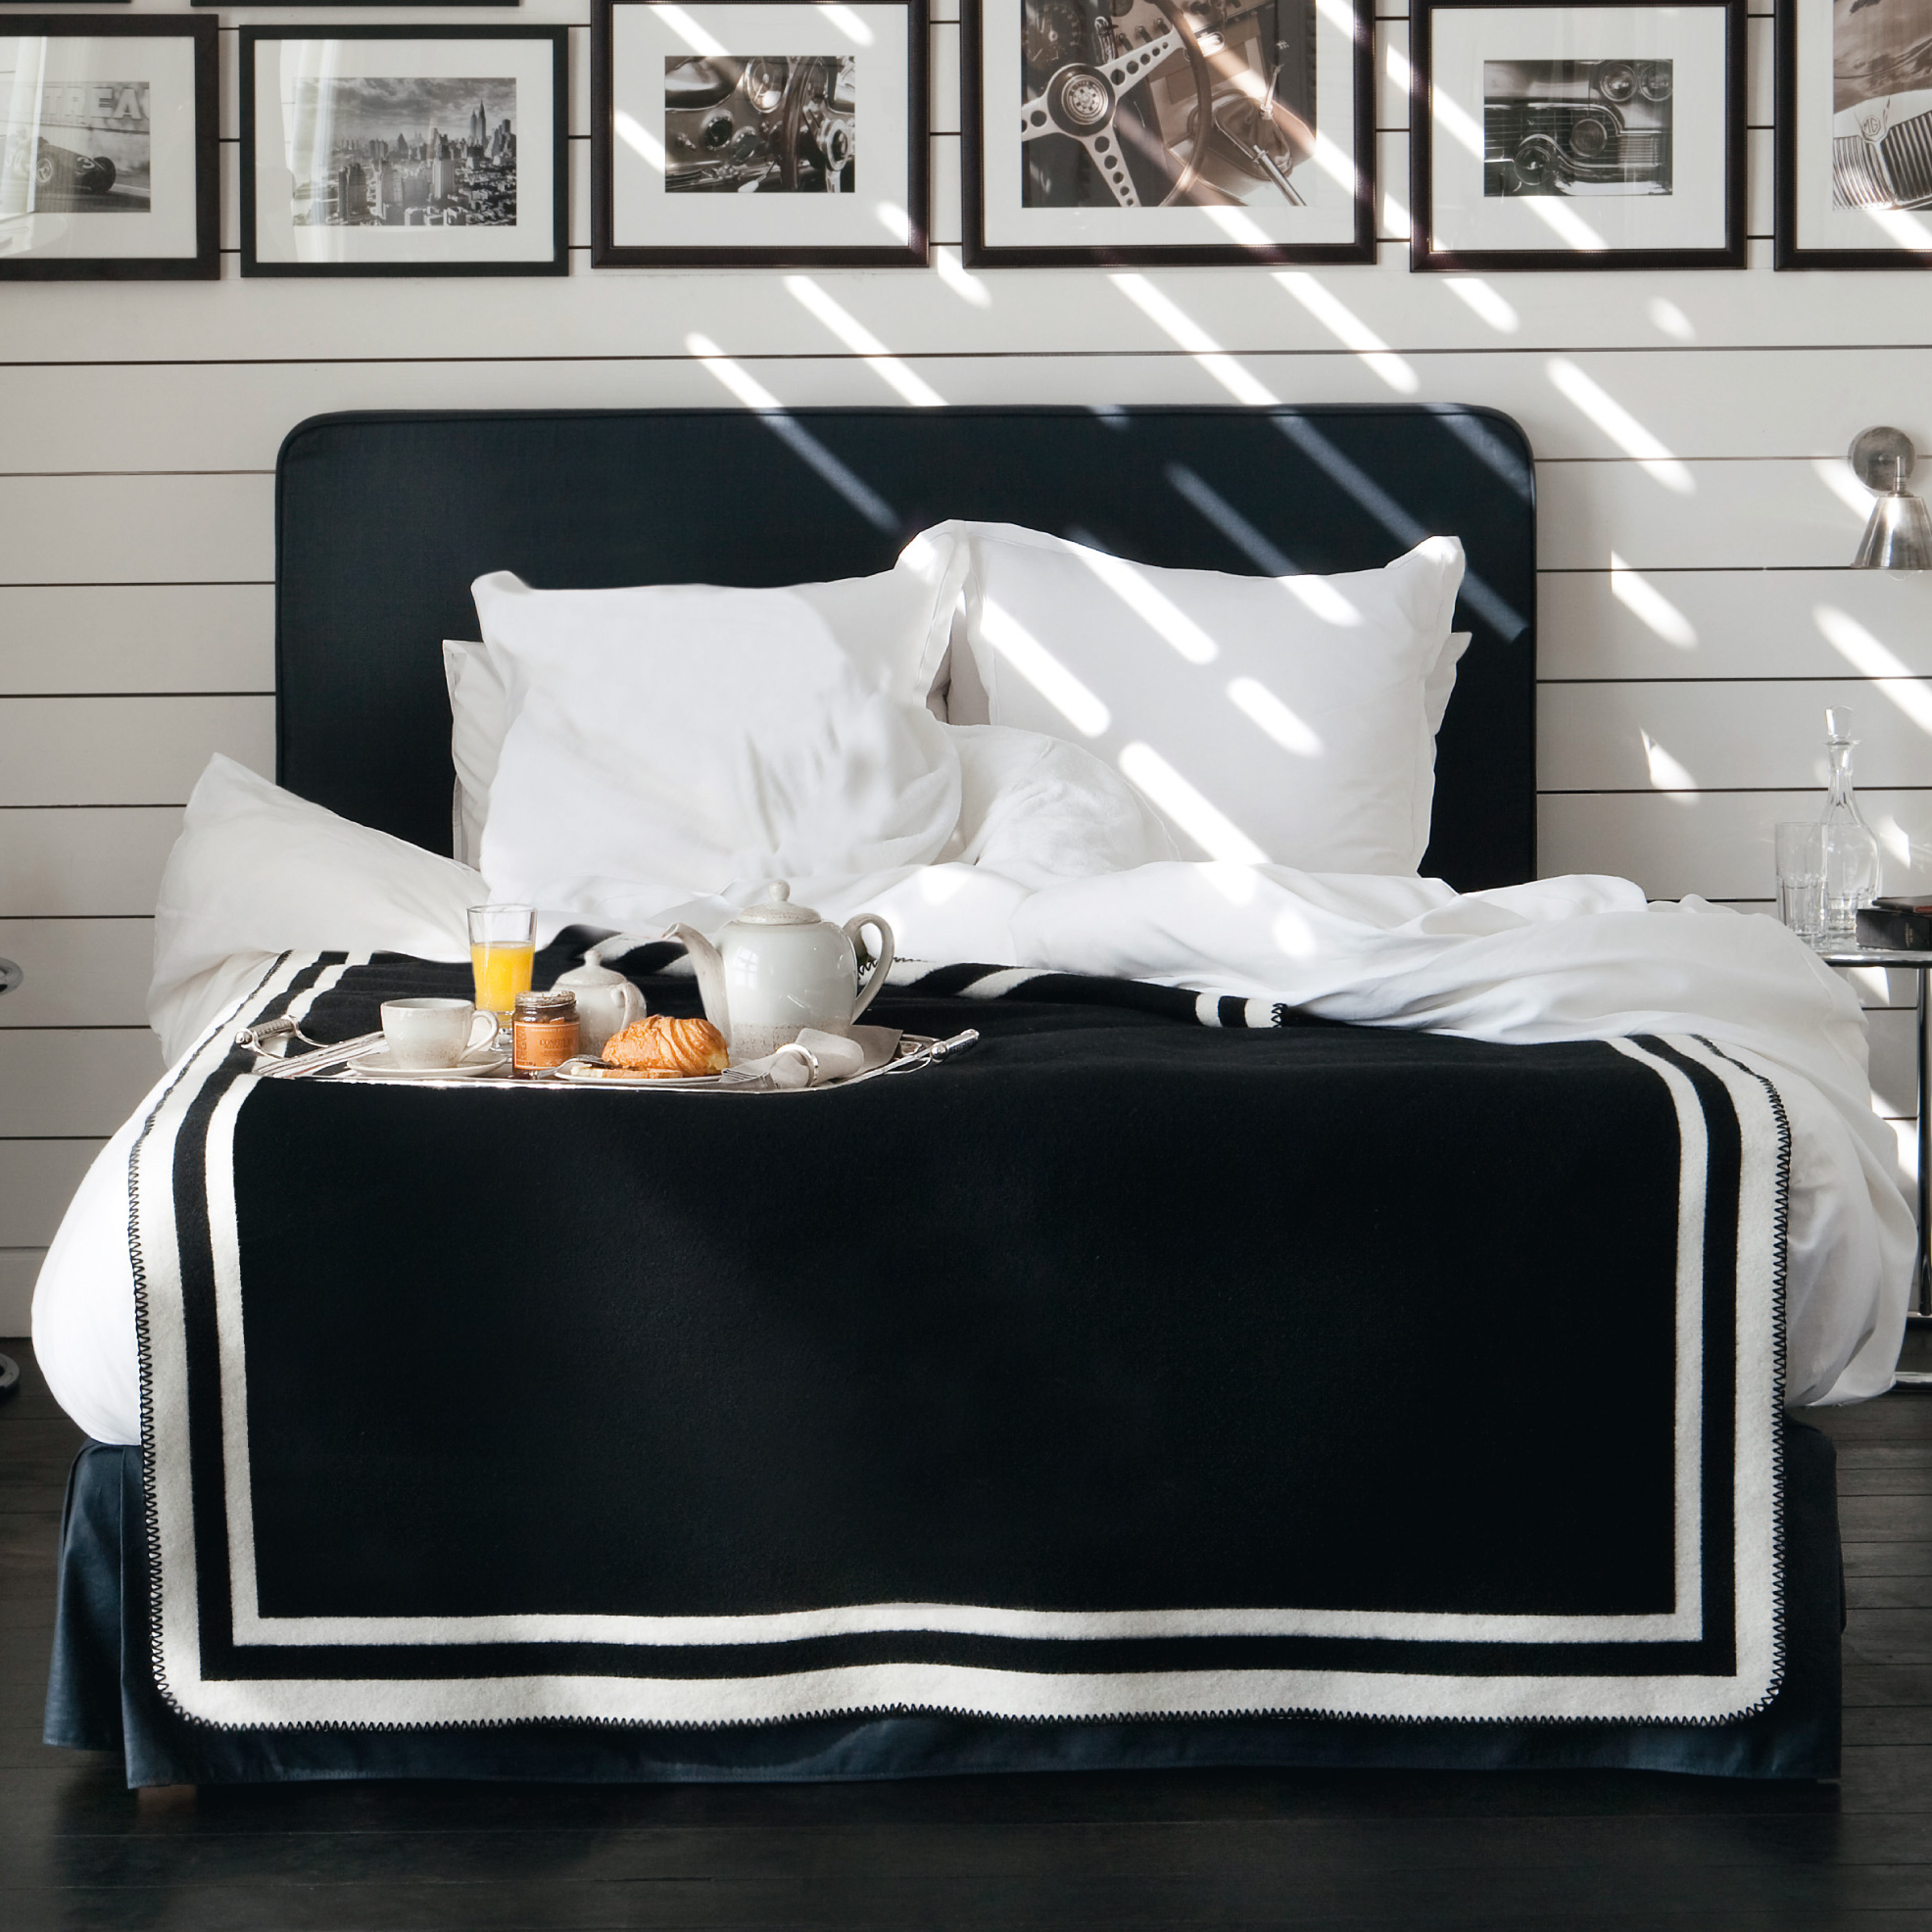 kopfteil fr bett 180 bett weiss ikea bett weia x betten x. Black Bedroom Furniture Sets. Home Design Ideas